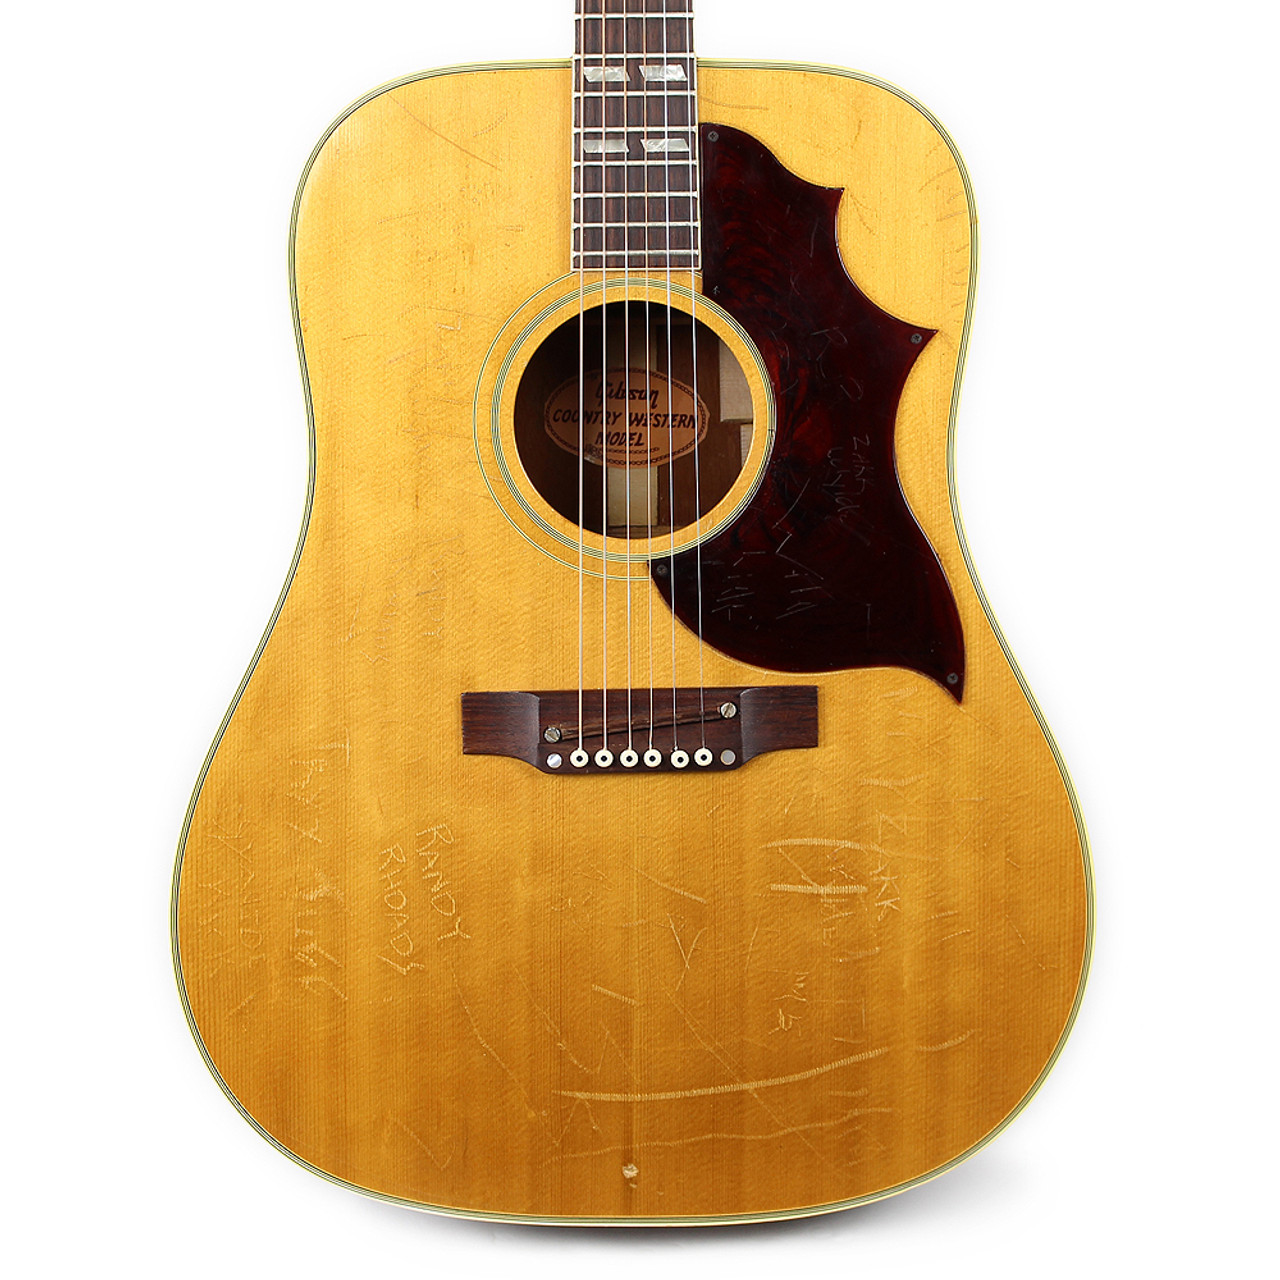 Vintage 1968 Gibson Country Western Dreadnought Acoustic Guitar Natural Finish